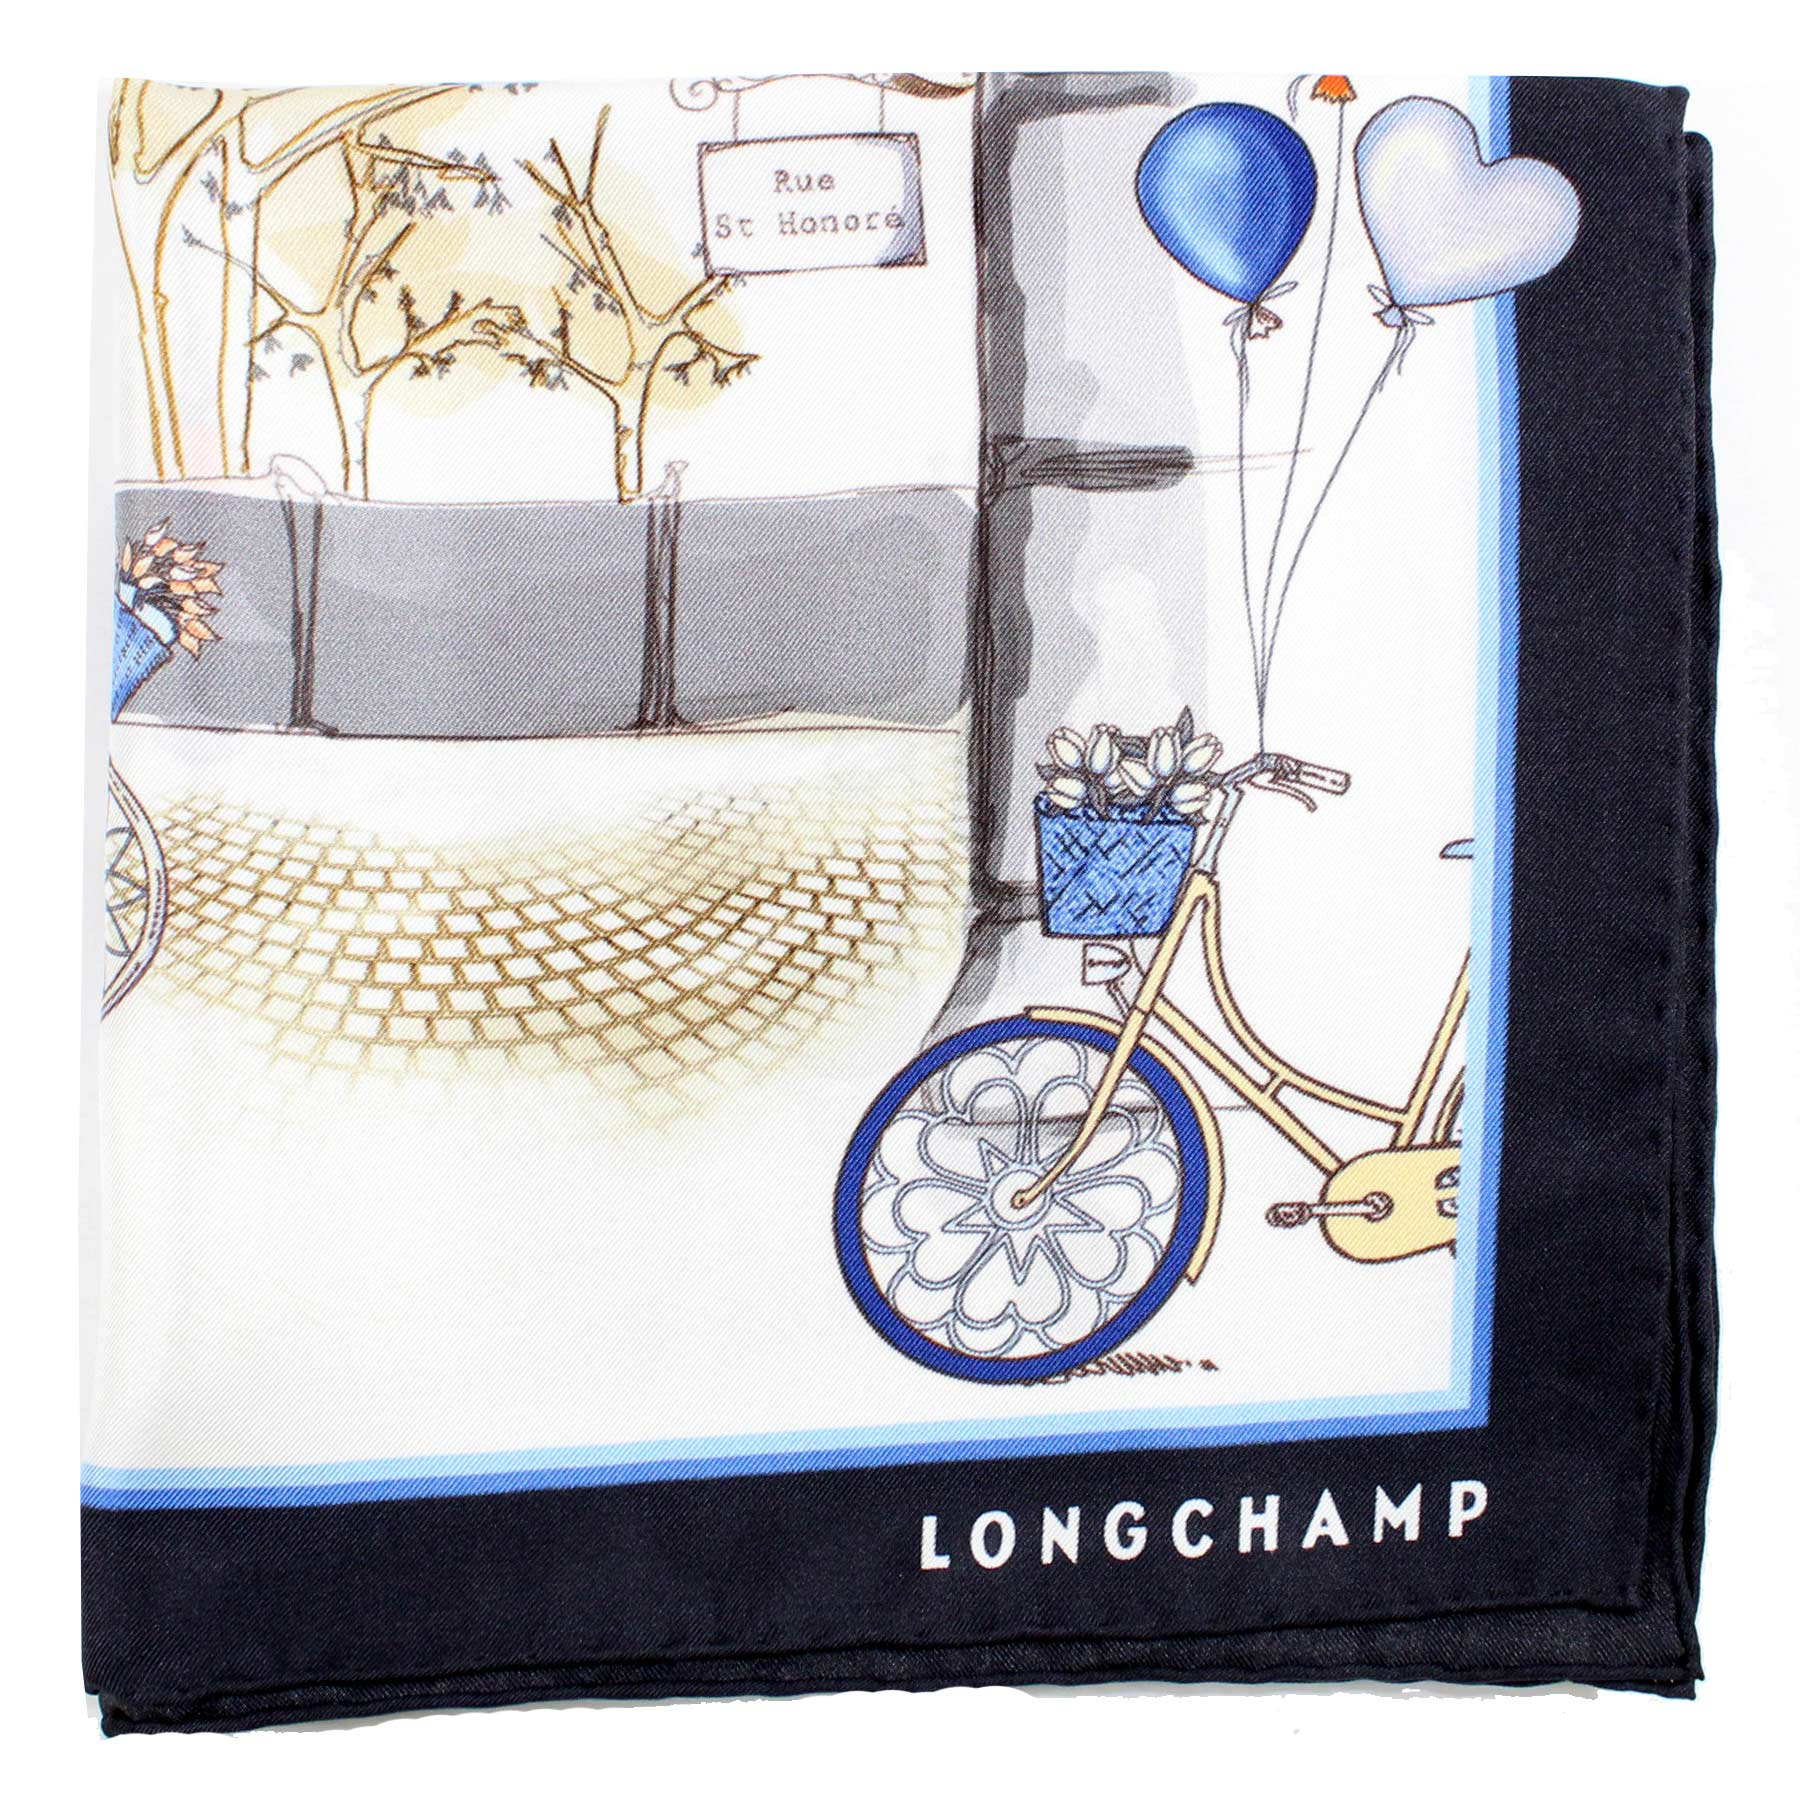 Longchamp Scarf Navy Blue Bikes  Balloons - Large Twill Silk Square Scarf